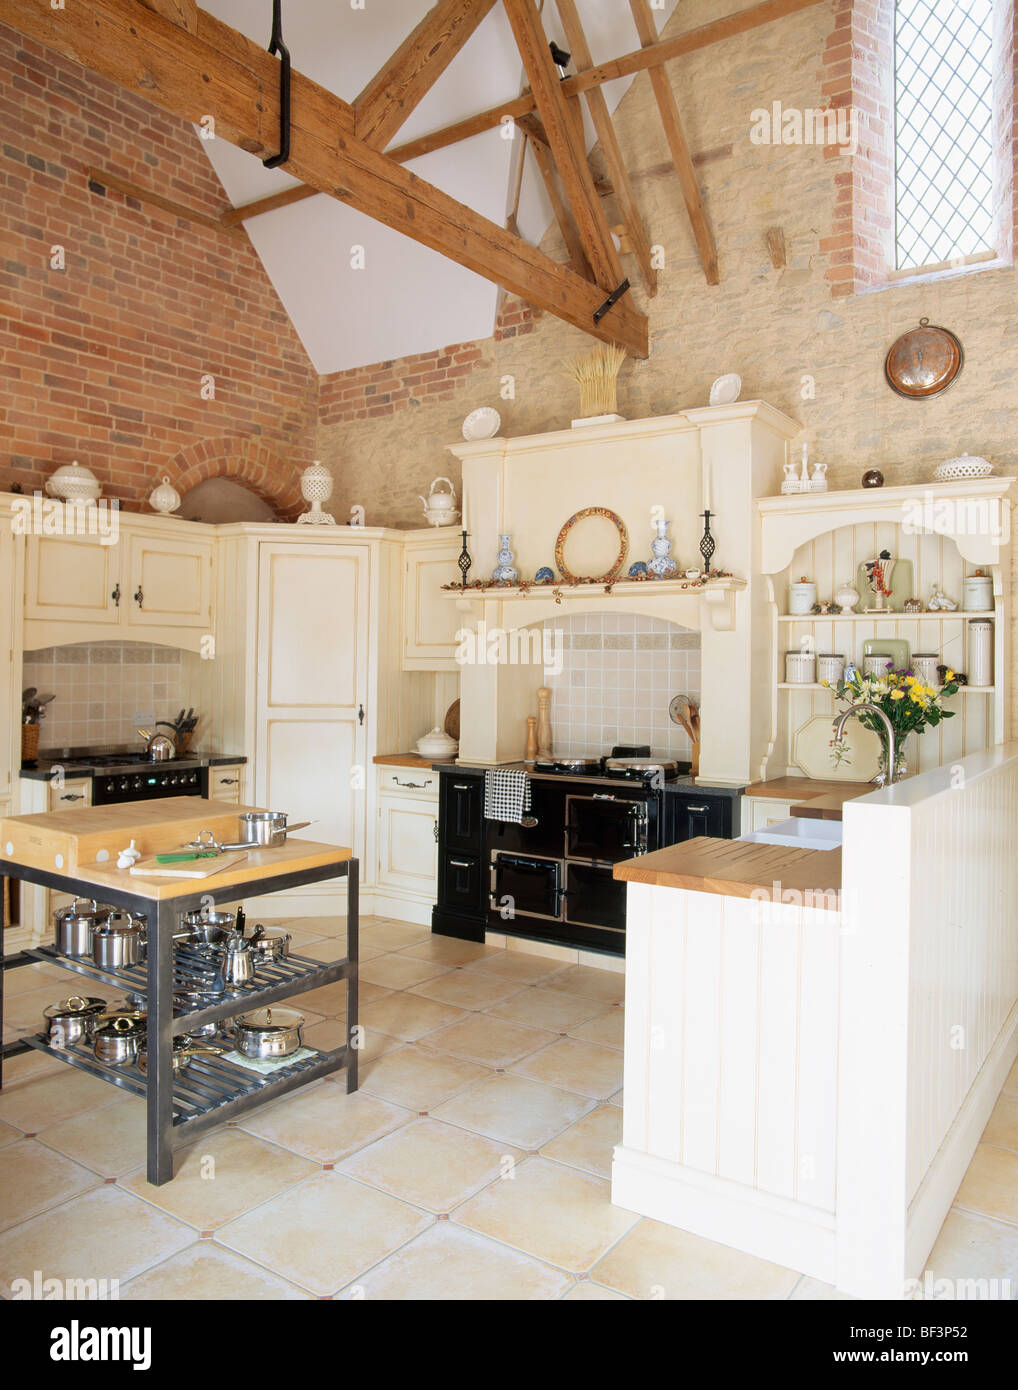 Black Aga Oven And Limestone Flooring In Barn Conversion Kitchen With  Saucepanu0027s On Shelves On Modern Butcheru0027s Block